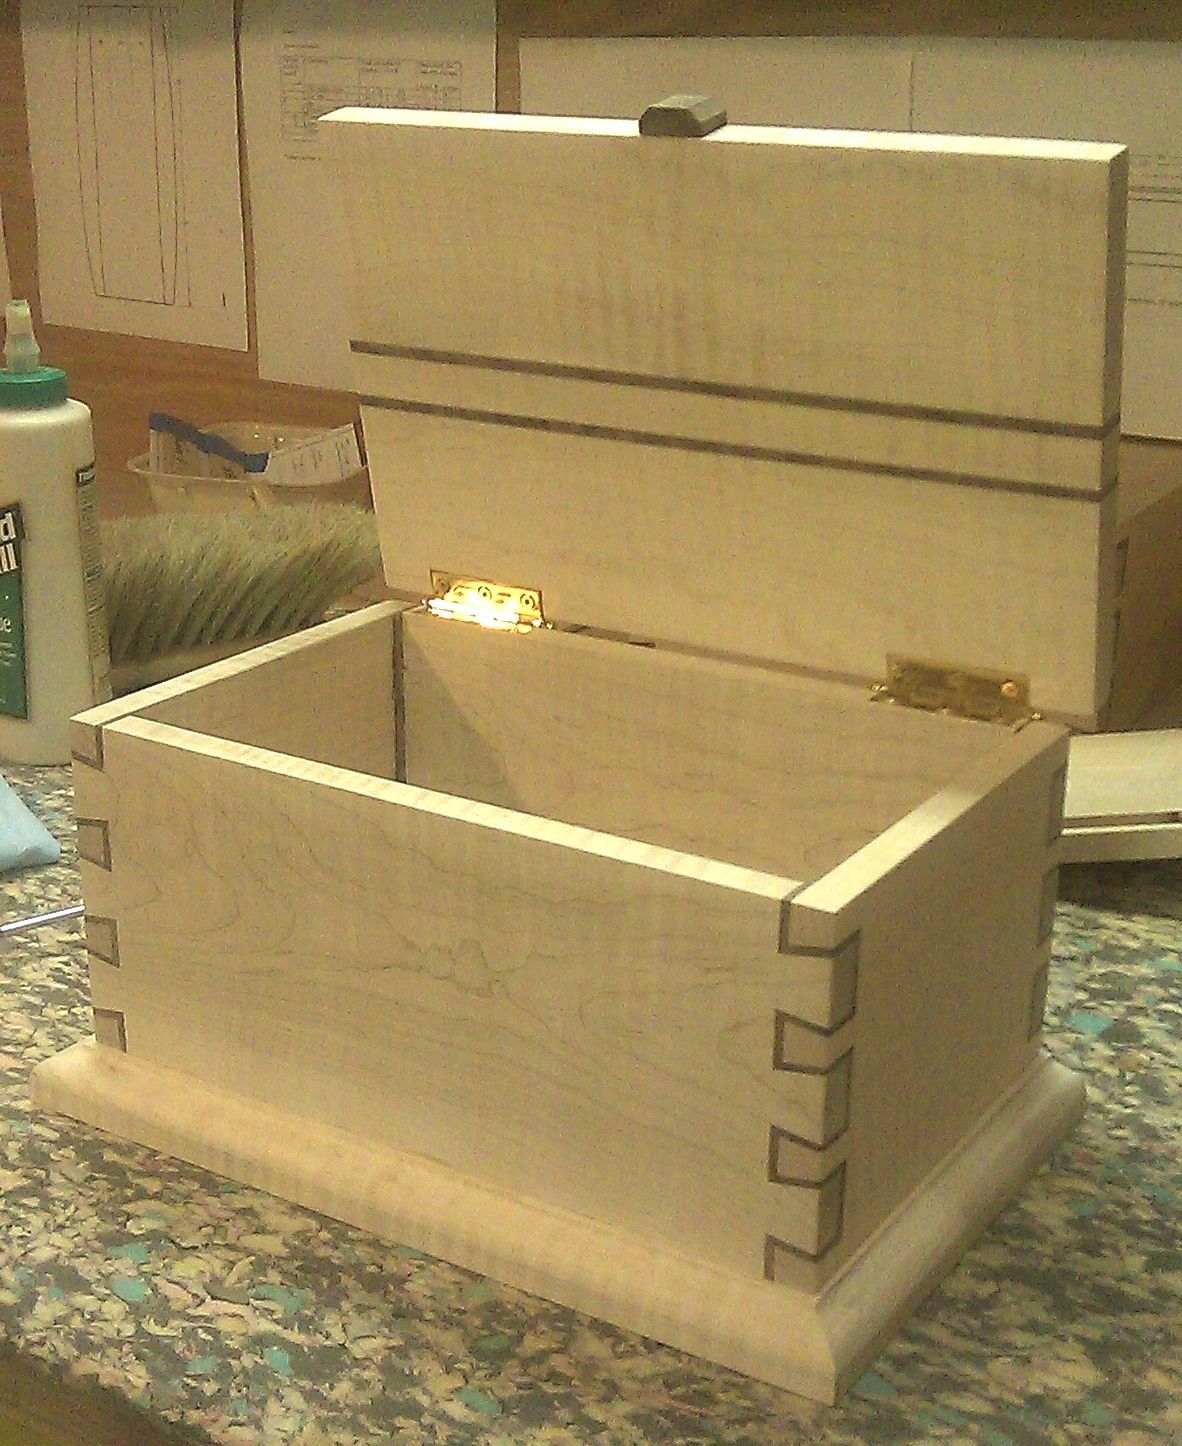 another small dovetail box that might inspire some ideas